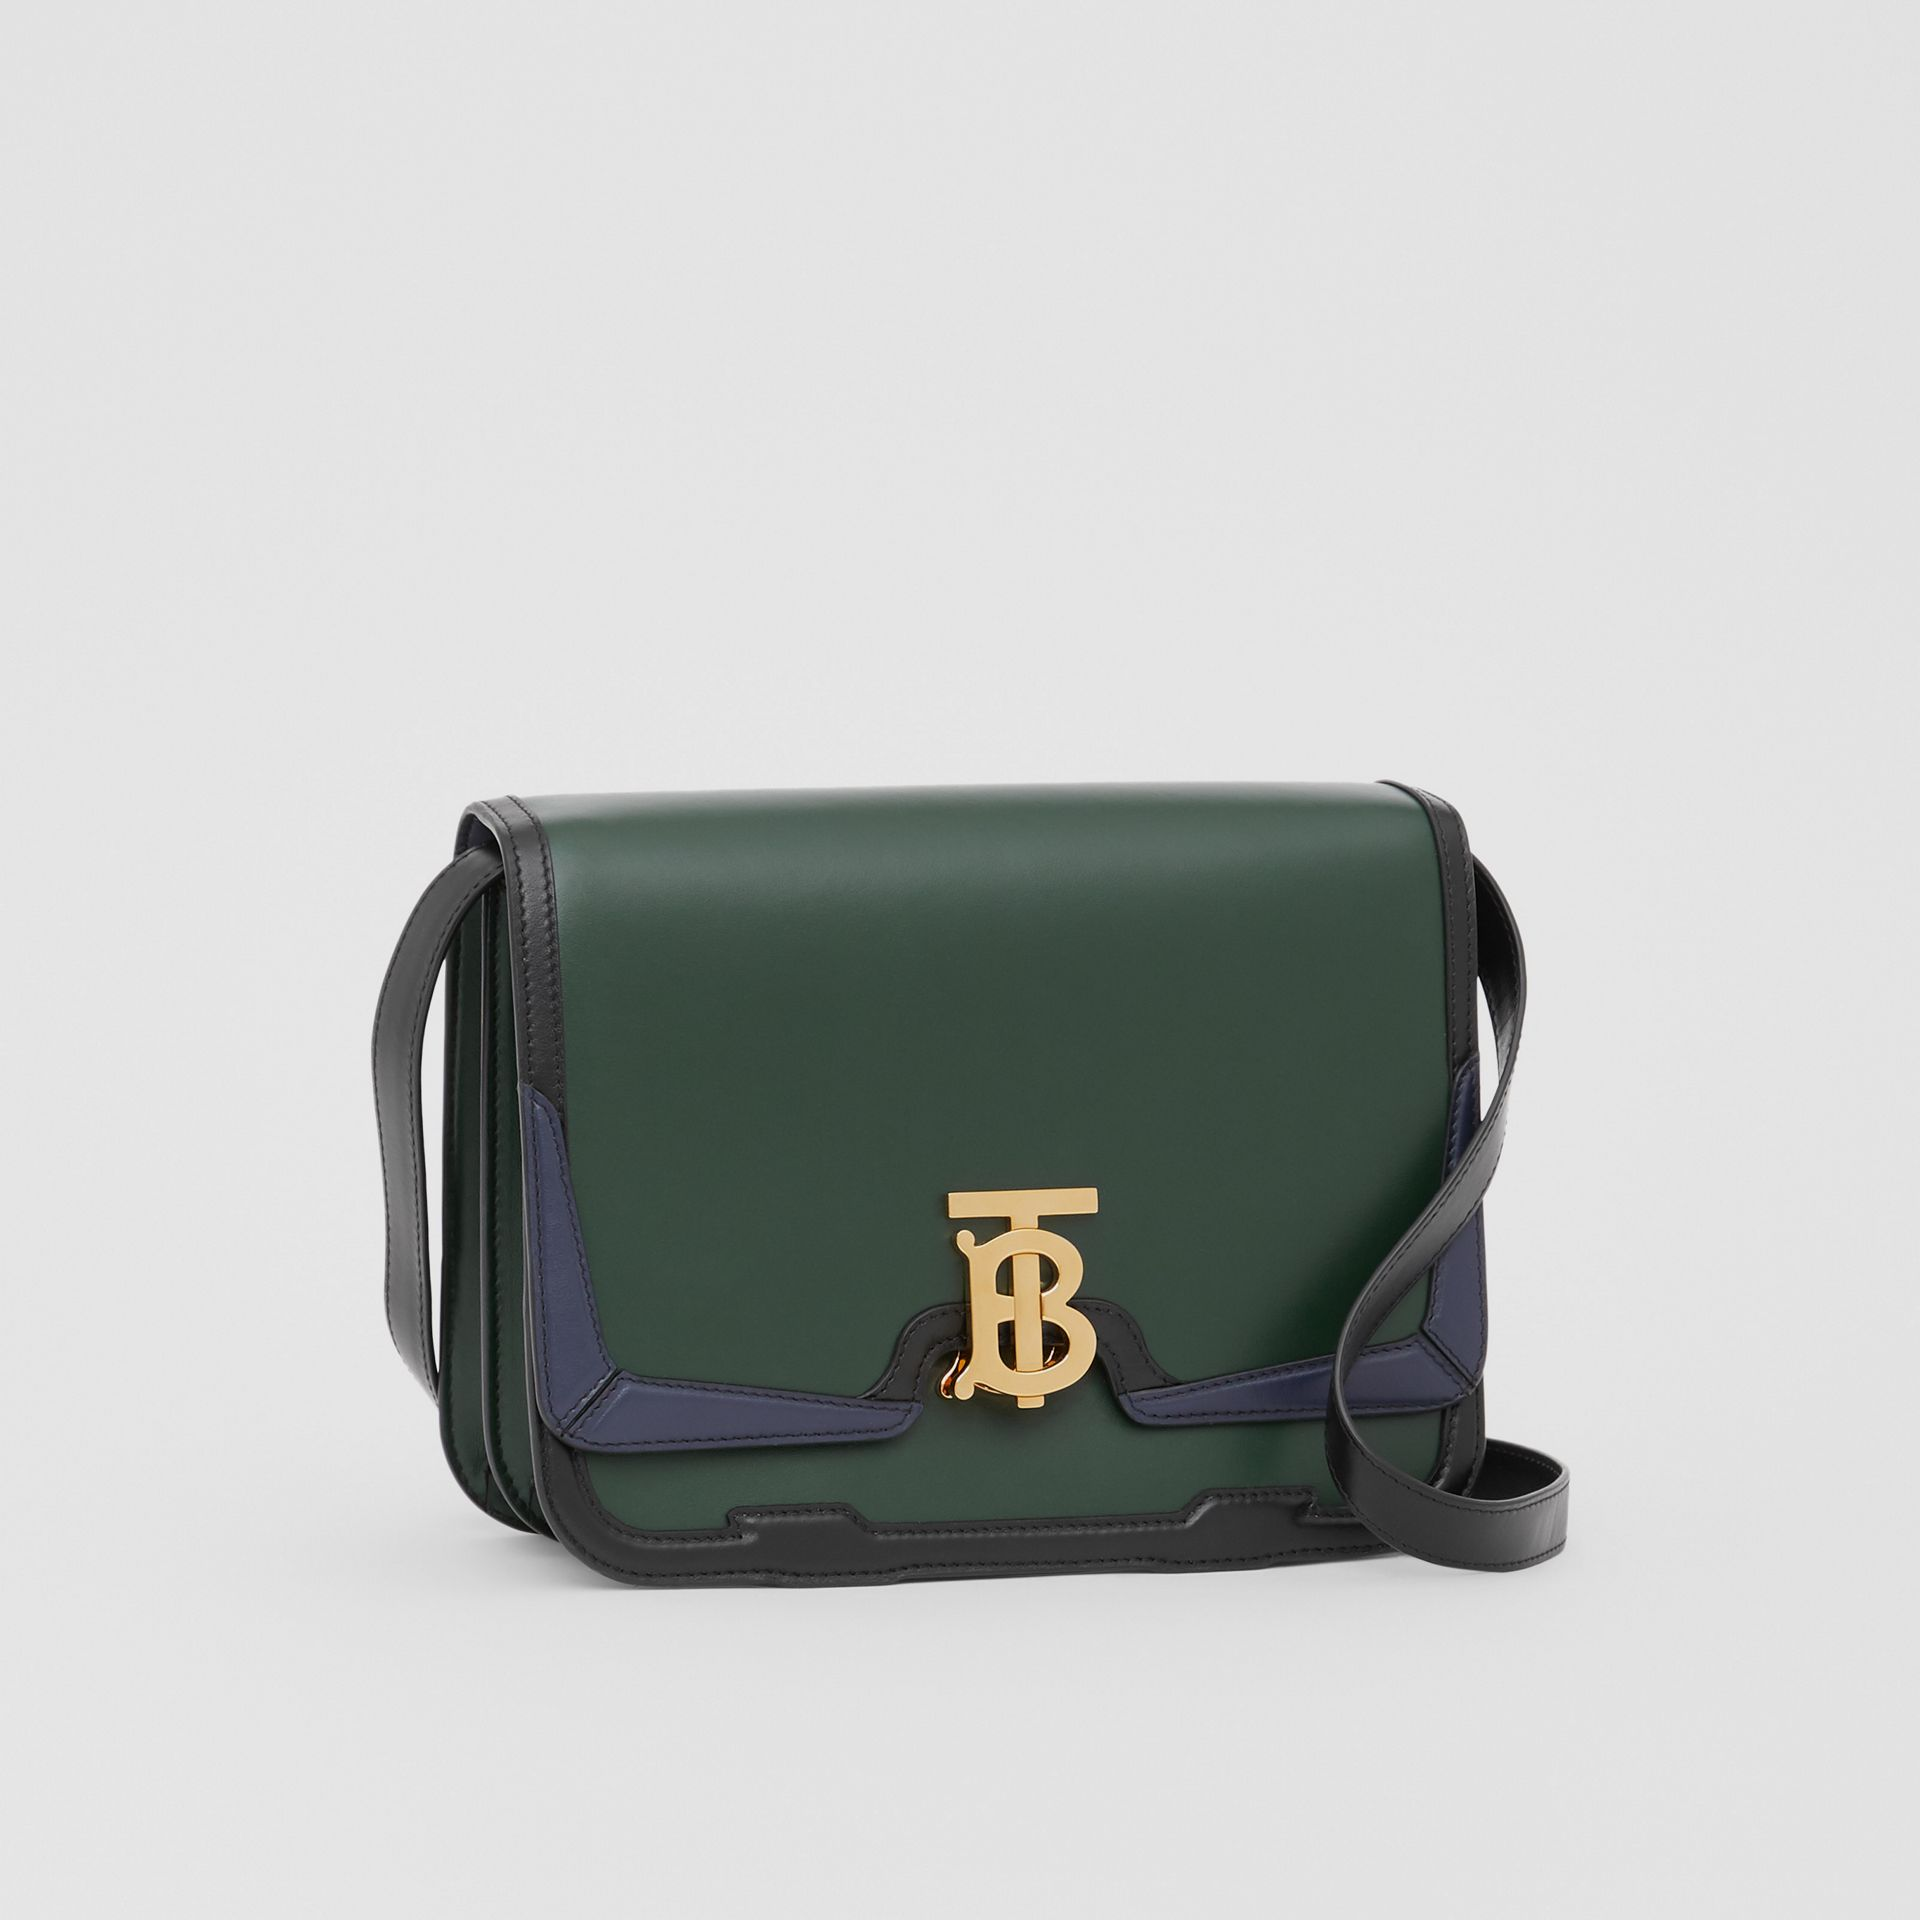 Medium Appliqué Leather TB Bag in Dark Pine Green - Women | Burberry United Kingdom - gallery image 4